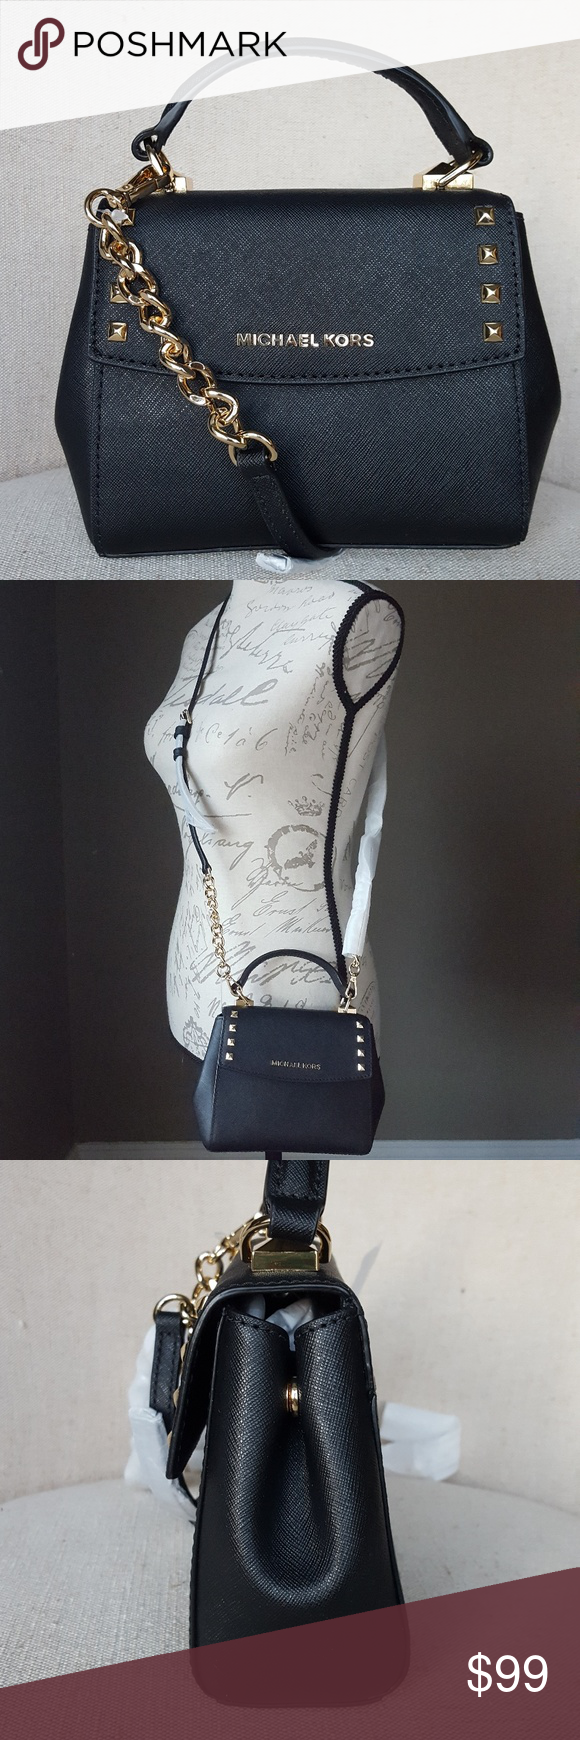 26a948f1c10e0a NWT Michael Kors Karla crossbody bag purse black FIRM PRICE - THANK YOU  BRAND NEW IN FACTORY WRAPPING 100% guaranteed authentic NWT Michael Kors  MINI Karla ...